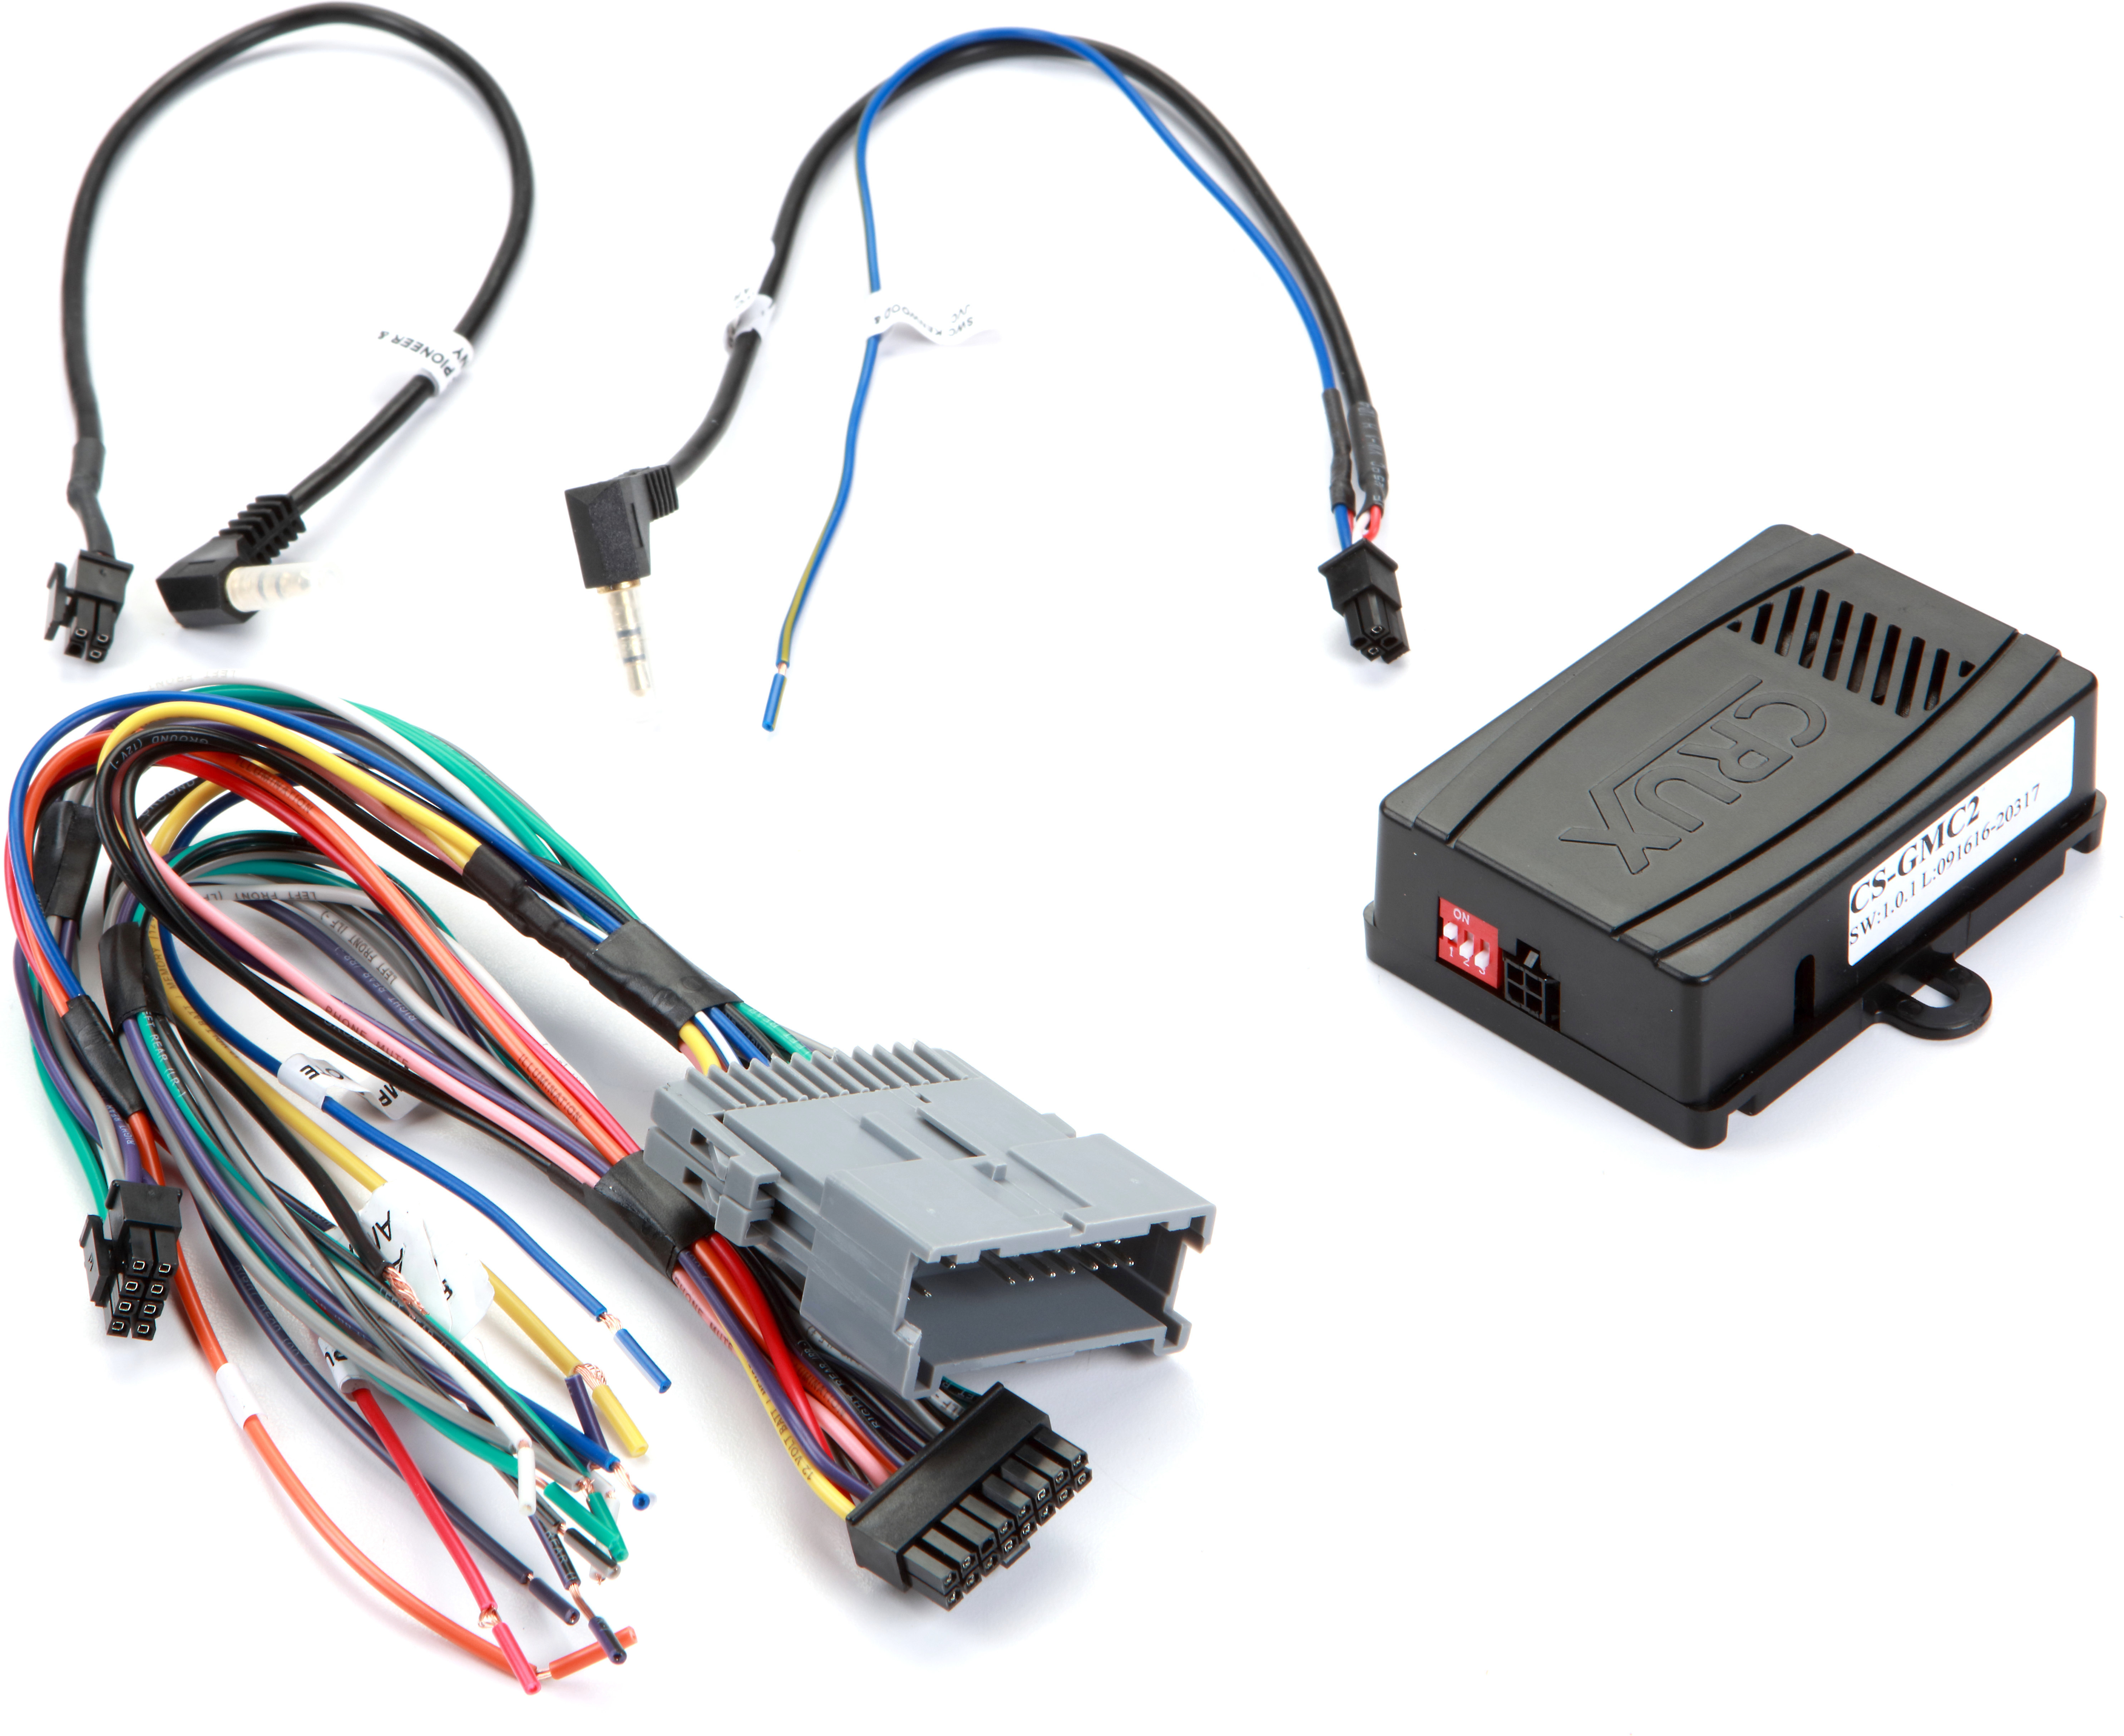 crux cs gmc2 wiring interface connect a new car stereo and retaincrux cs gmc2 wiring interface connect a new car stereo and retain steering wheel controls and factory amp in select 2000 2013 gm made vehicles at